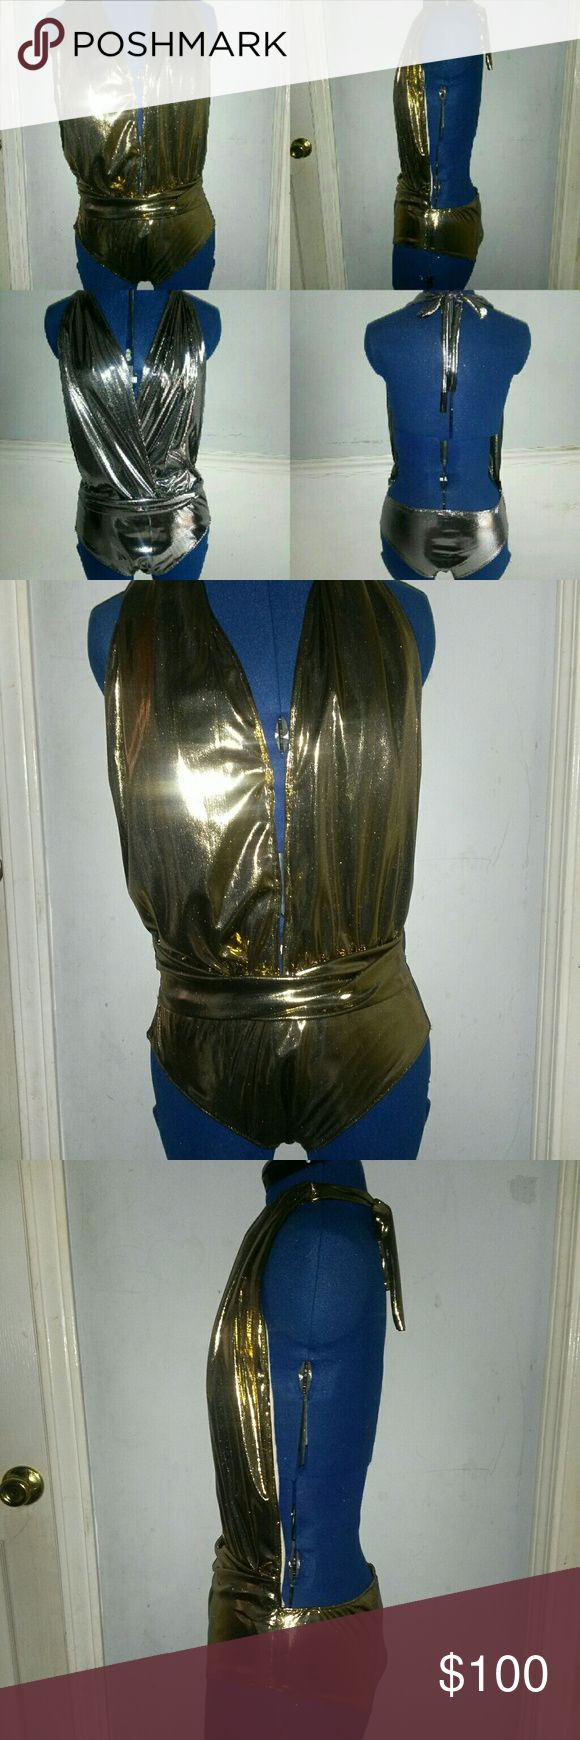 Matellic Gold and Silver Haulter Designed Swimsuit Made in USA with Care by Fashion Designer Regania Richards, S (4-6) Metallic Silver and Gold Swimsuits Swim One Pieces